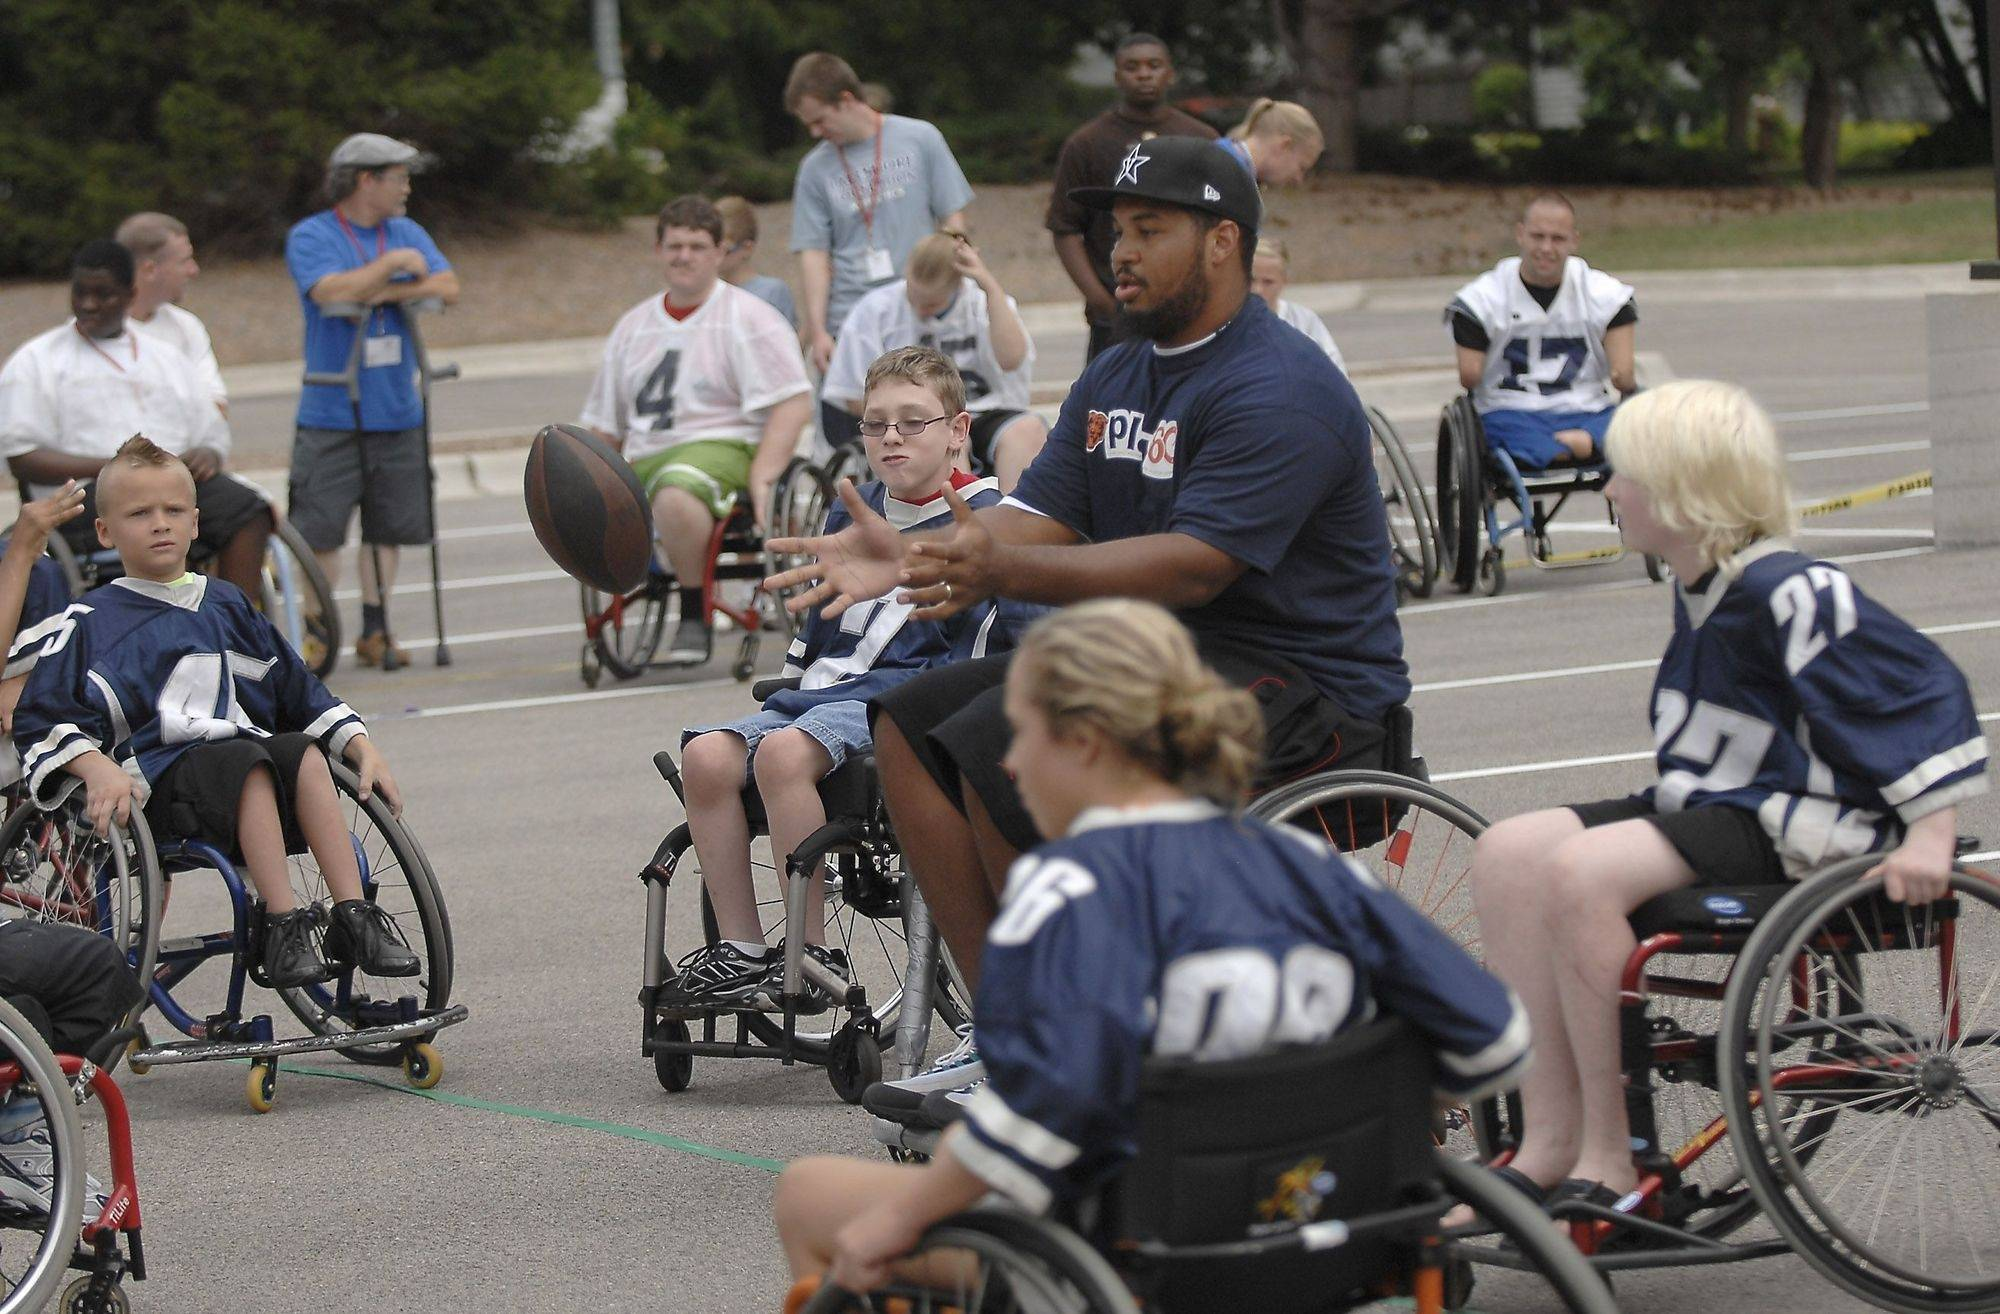 Chicago Bear Chris Williams eceives the snap as he quarterbacks during a wheelchair football game at the National Junior Disability Championship at Lake Forest High School Monday in Lake Forest